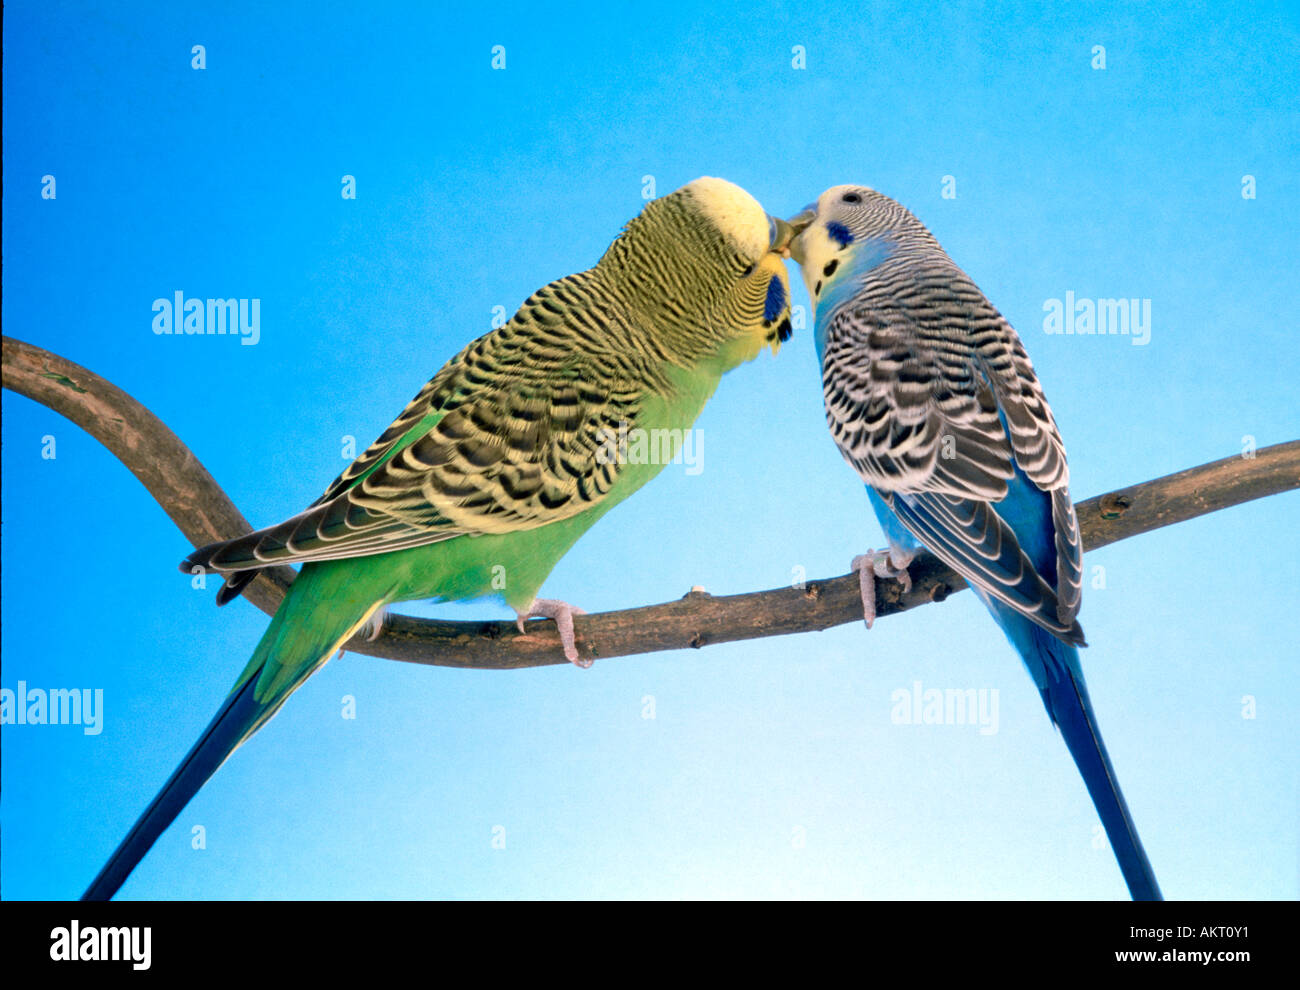 2 two pair couple green and blue budgie feeding each other love kiss kissing    sitting on a branch budgerigar - Stock Image